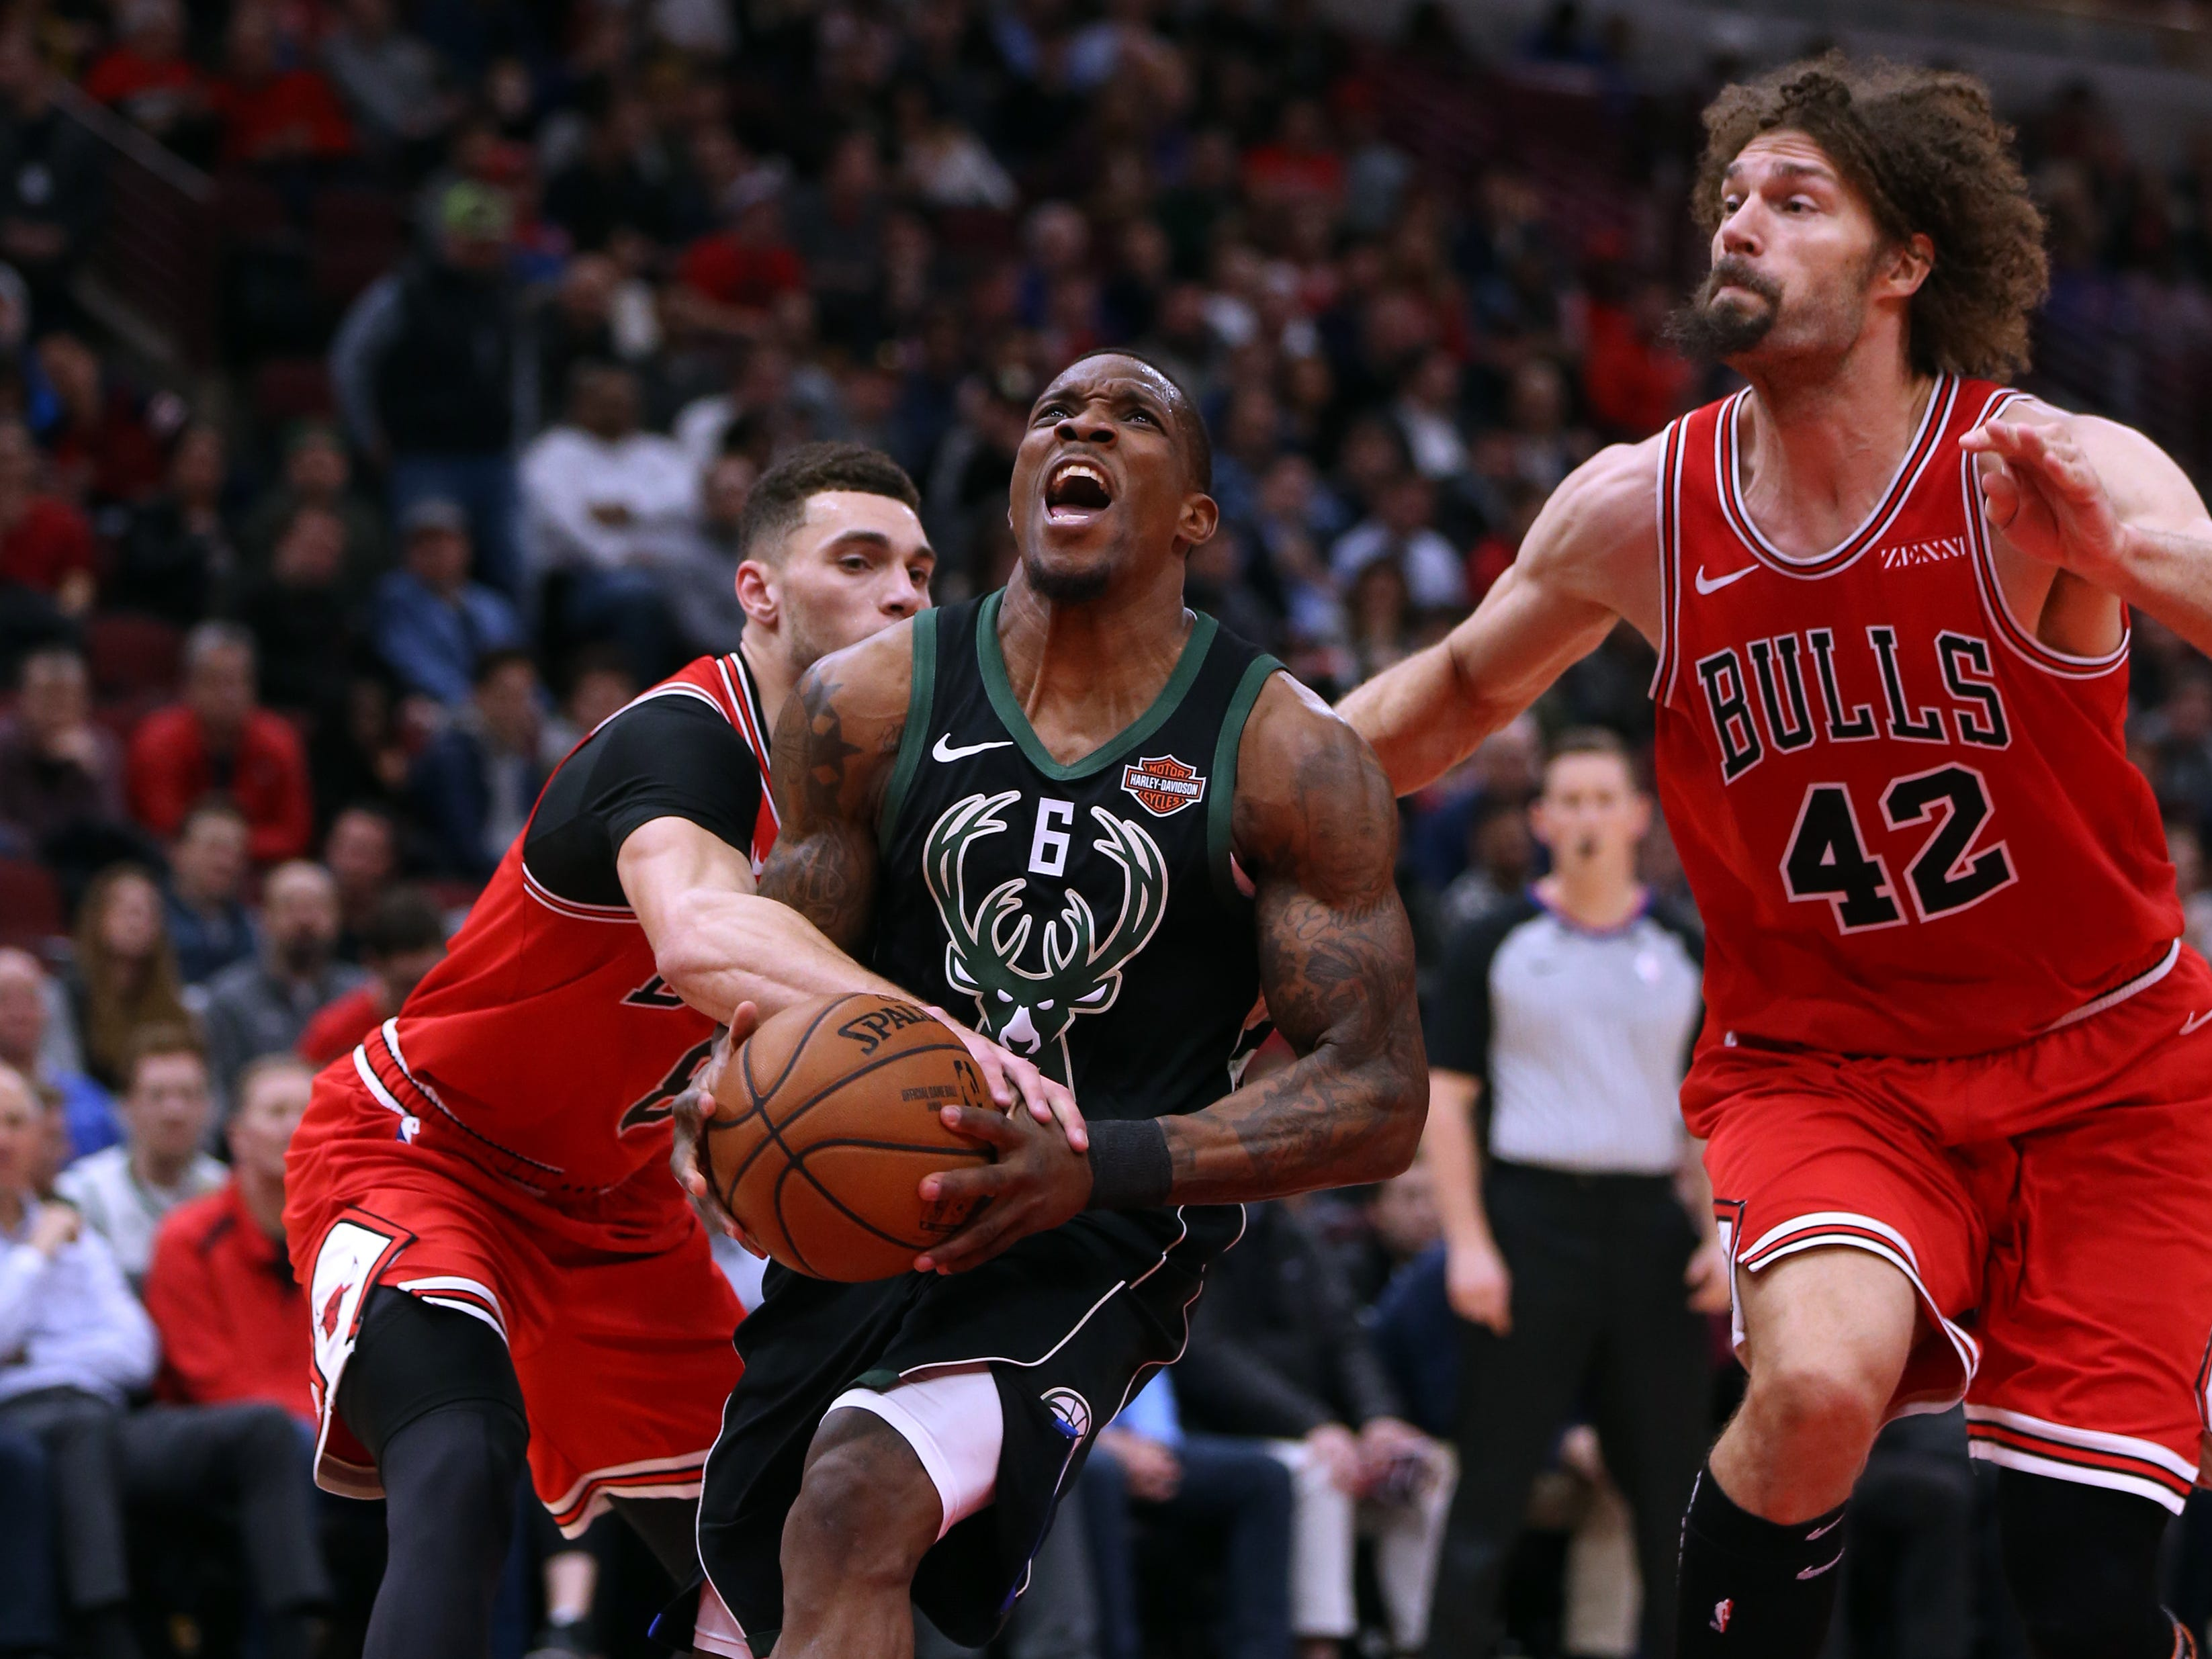 Bucks guard Eric Bledsoe is fouled by Bulls guard Zach LaVine (left) as he drives to the basket with Chicago center Robin Lopez closing in during the first half Monday.